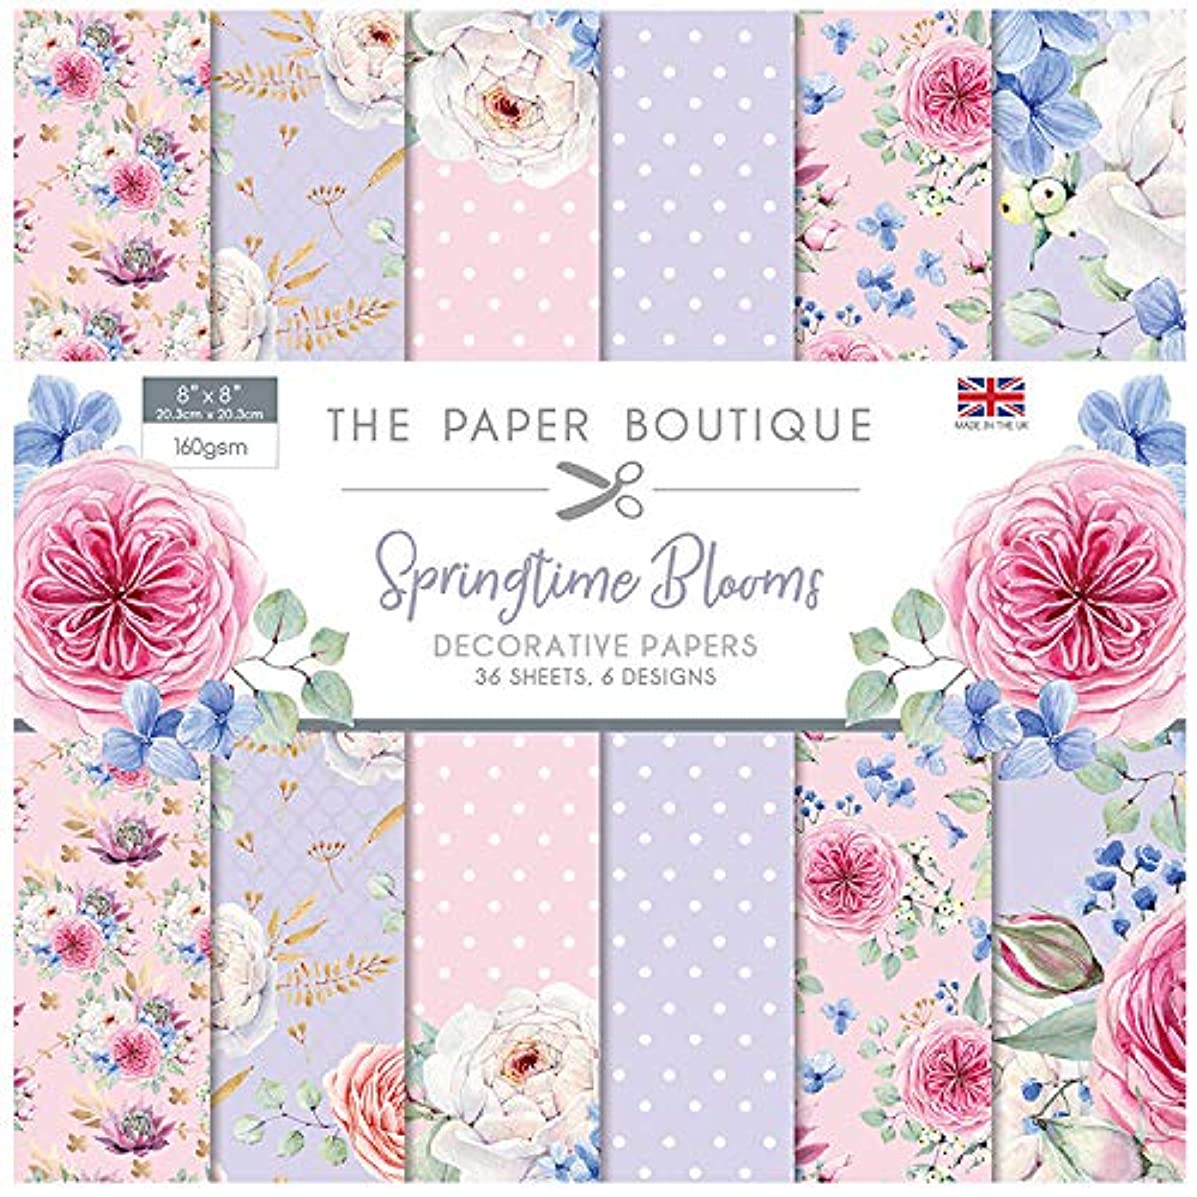 The Paper Boutique The Springtime Blooms 8